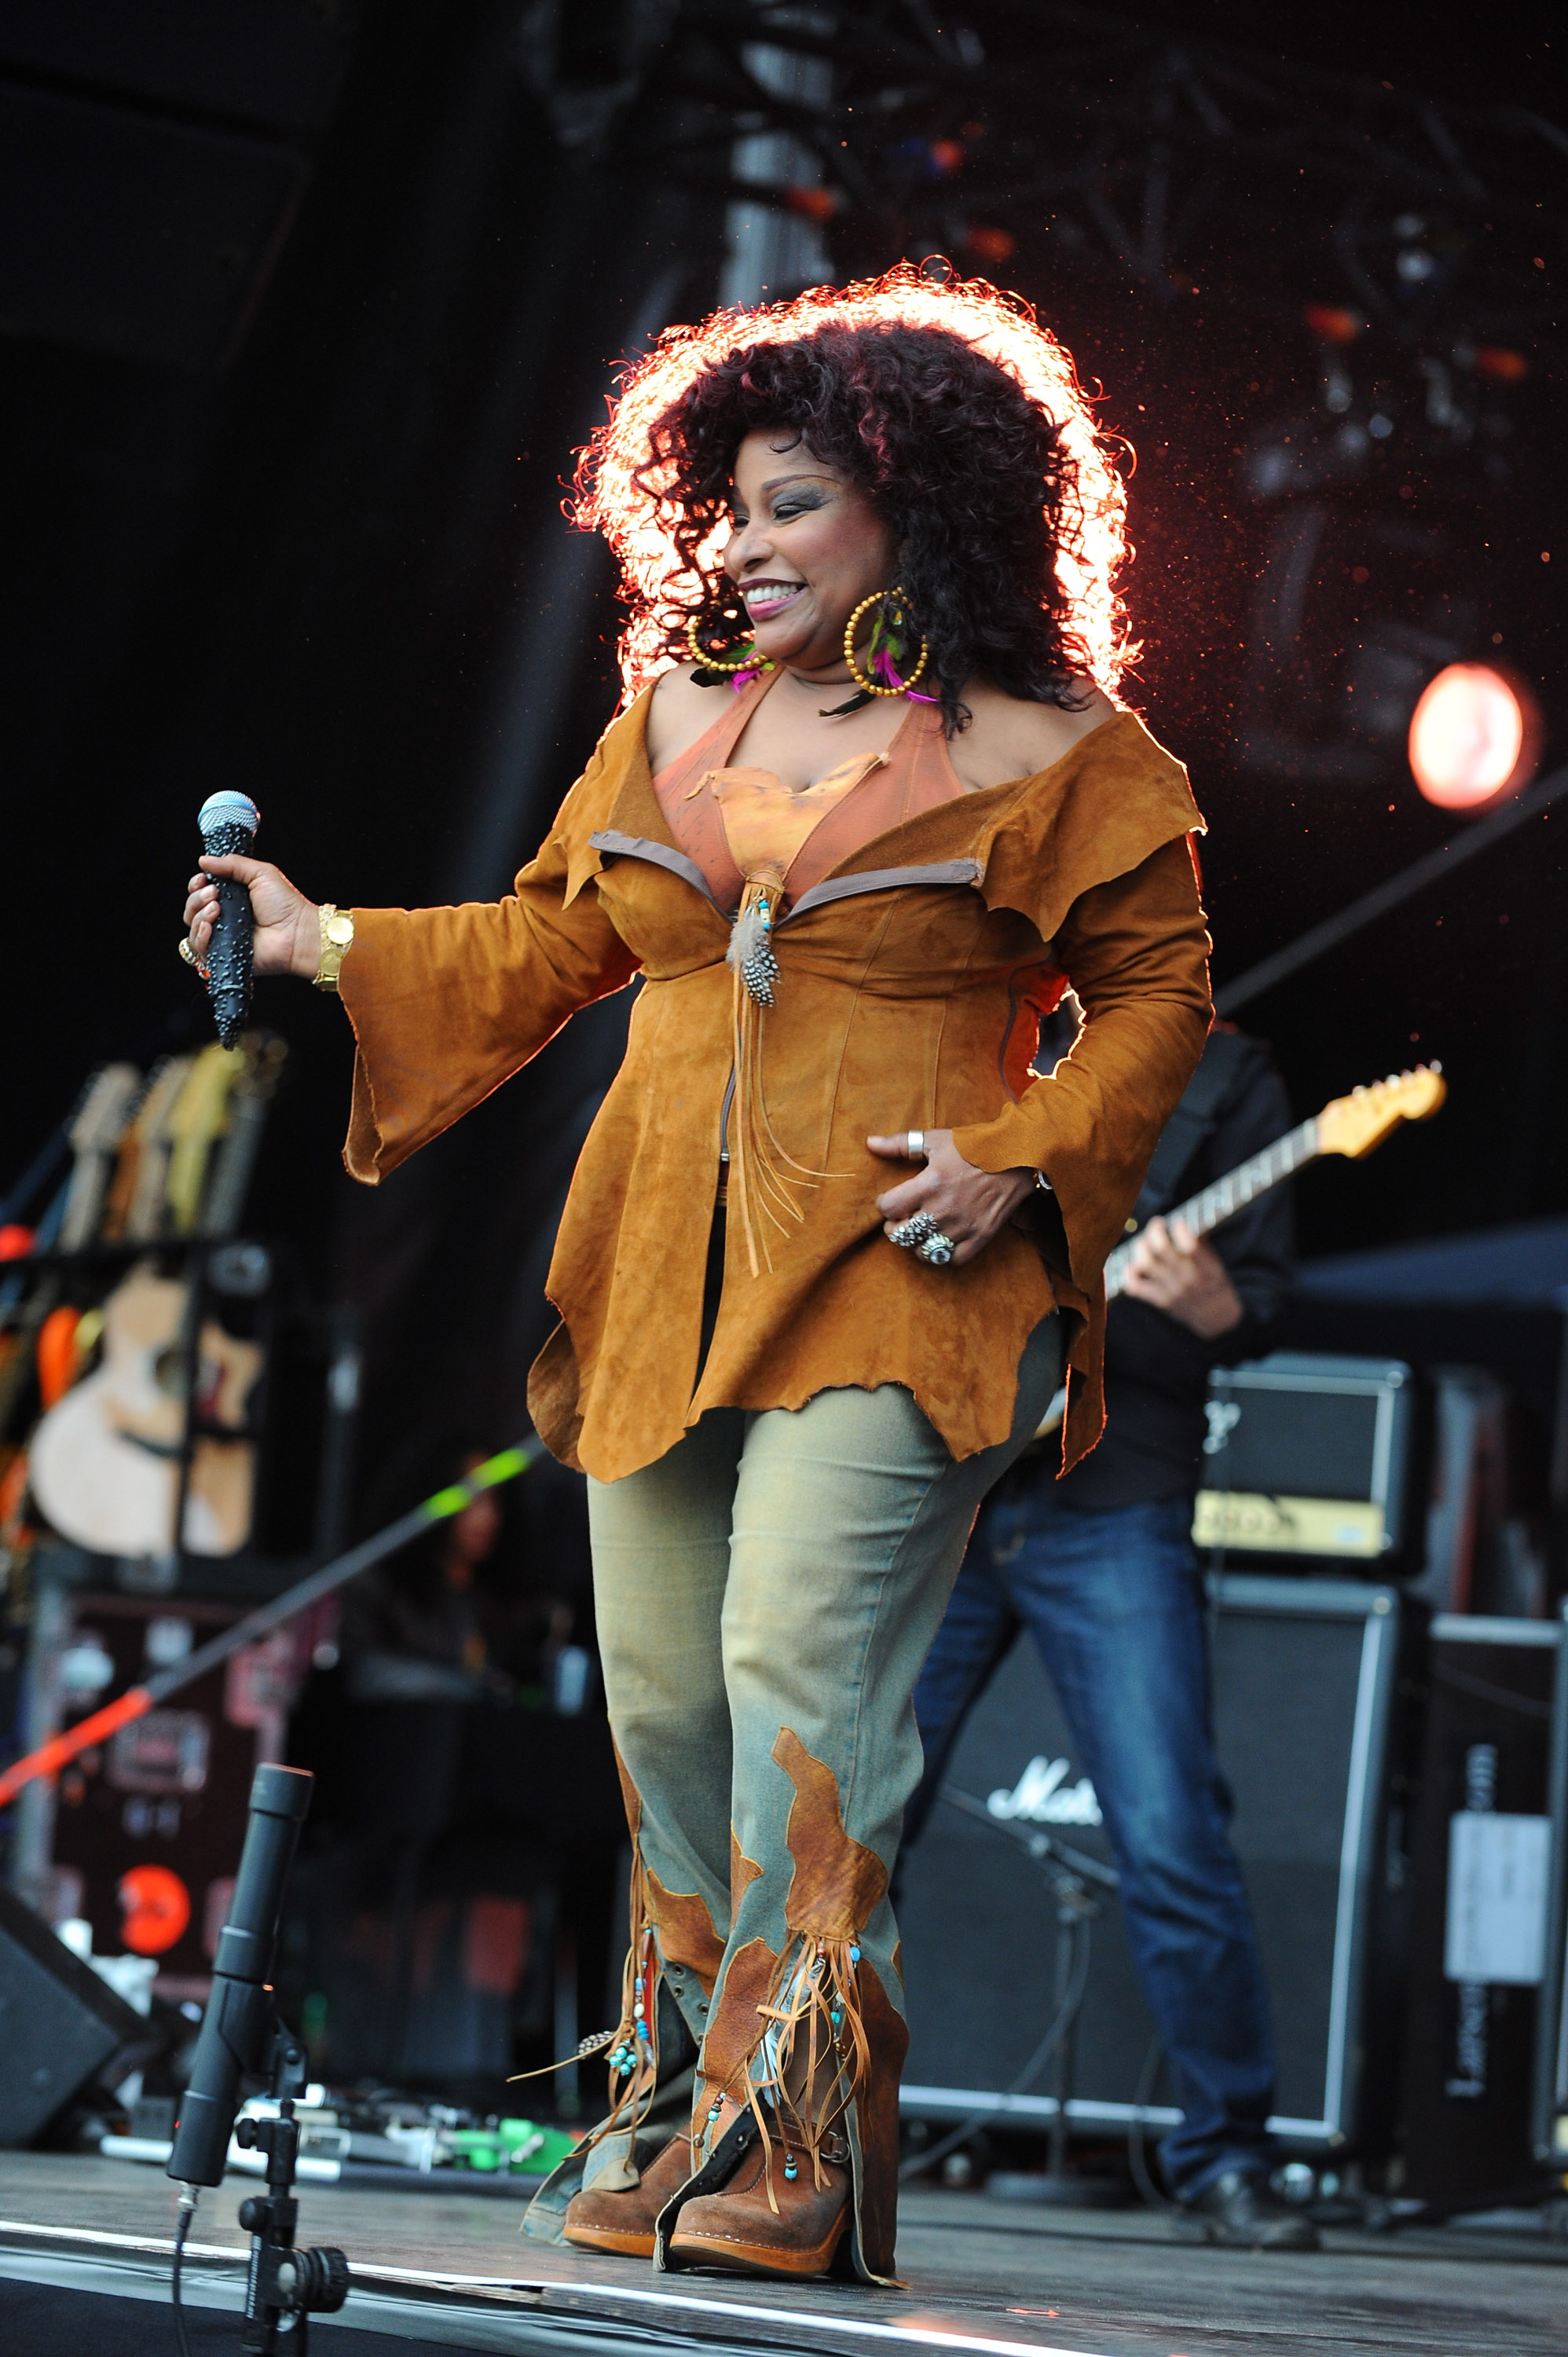 Chaka Khan Performing At NPG Music & Arts Festival. NPG Records 2011